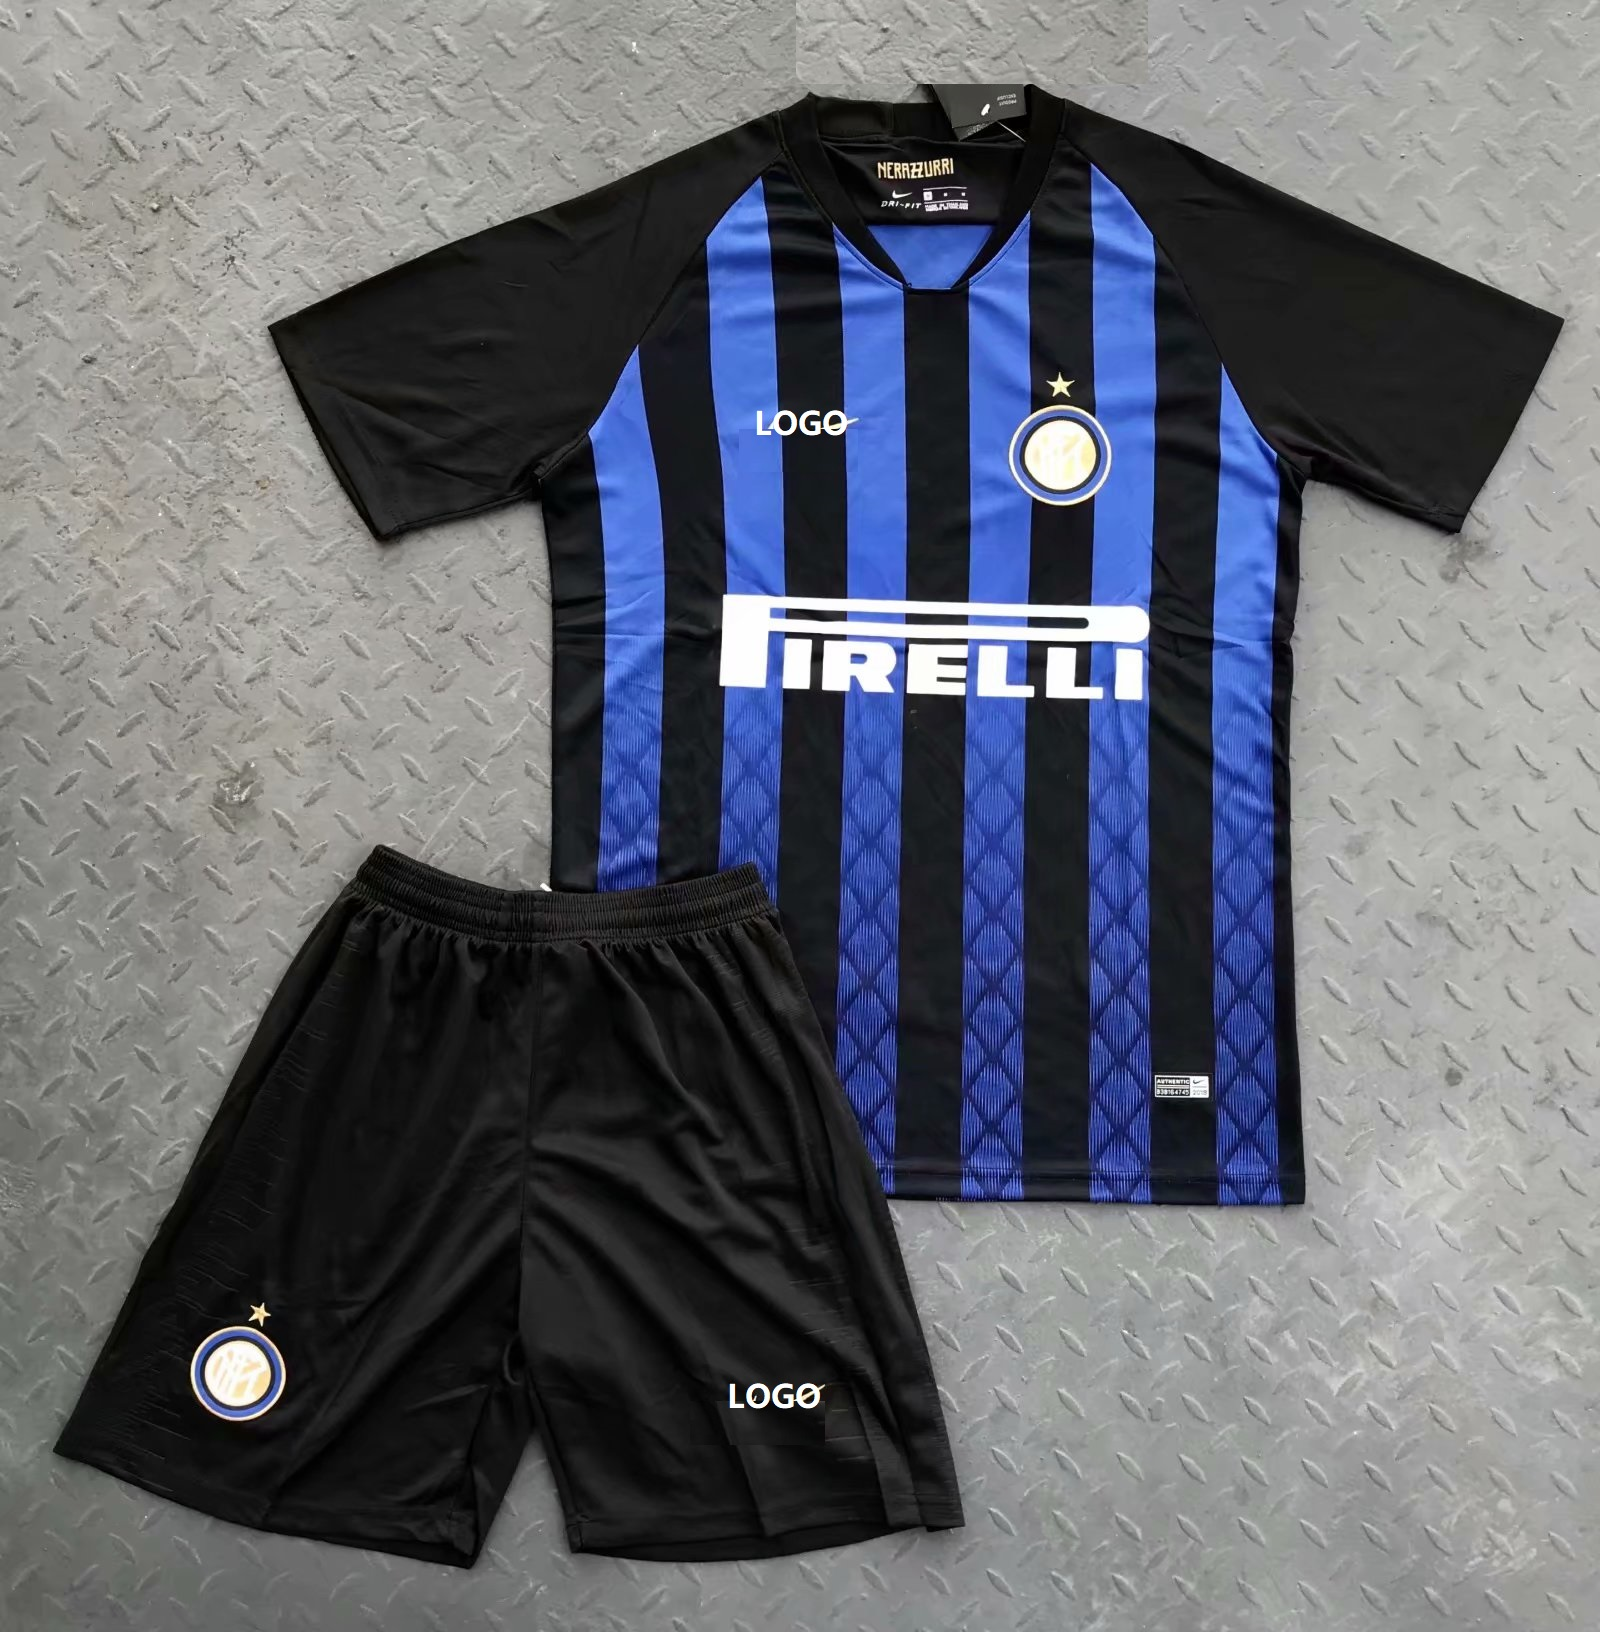 3176cb53f12 2018 19 Inter Milan Home Blue Soccer Jersey Uniform Custom Football Jersey  Uniform